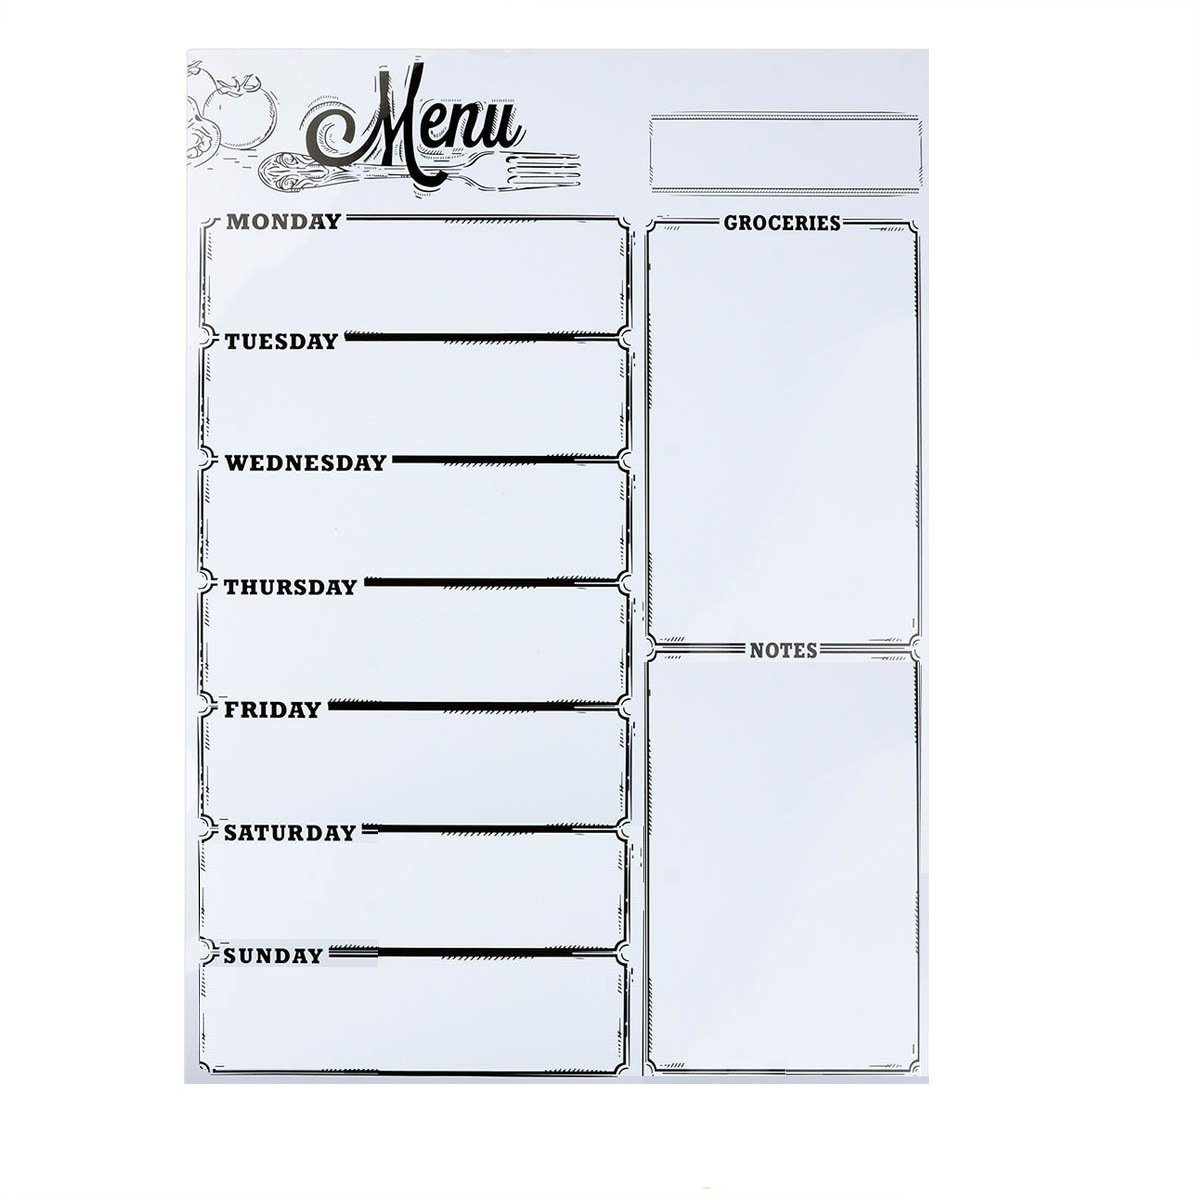 Weekly Board Loftstyle Magnetic Refrigerator Chalkboard Weekly Menu Meal Planner Dry Erase Board For Refrigerator Dinner List Note Schedule Board Shopping List Memo Board 16''X 12''